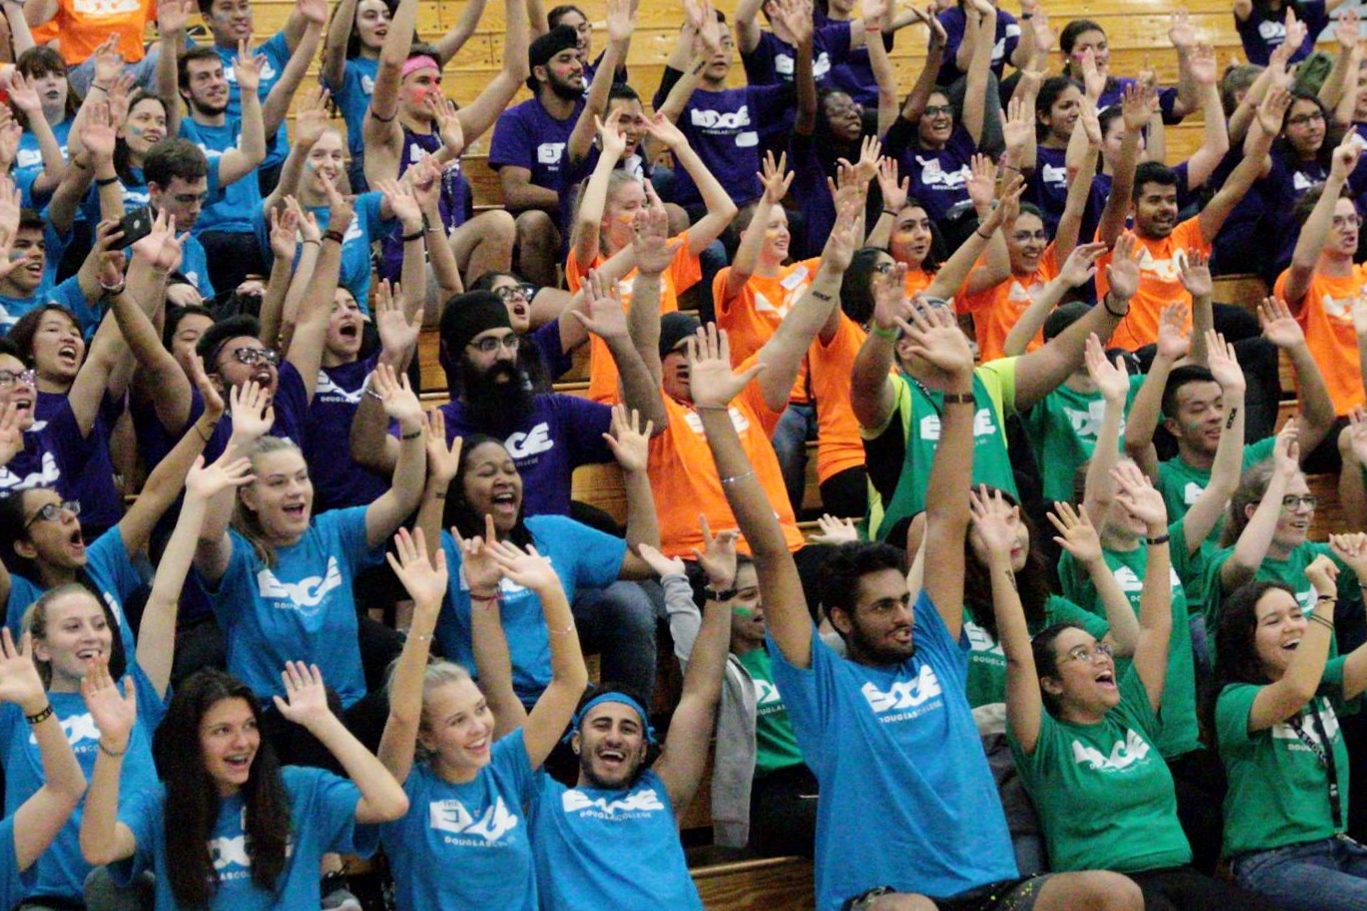 Students in colourful EDGE shirts are raising their hands